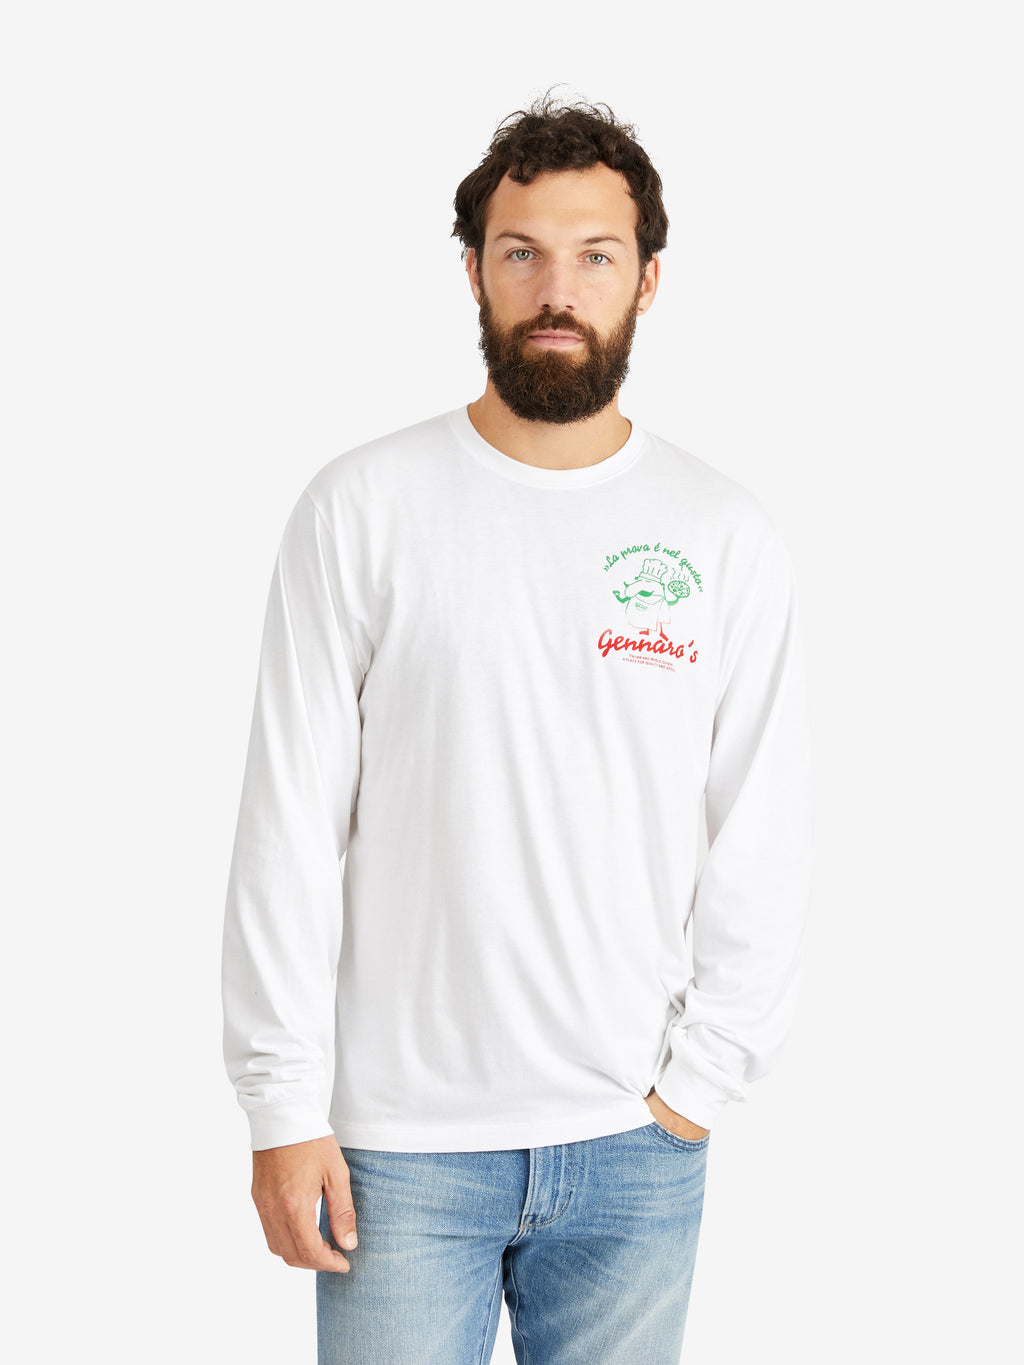 A Kind of Guise Gennaro Long-Sleeve White T-shirt